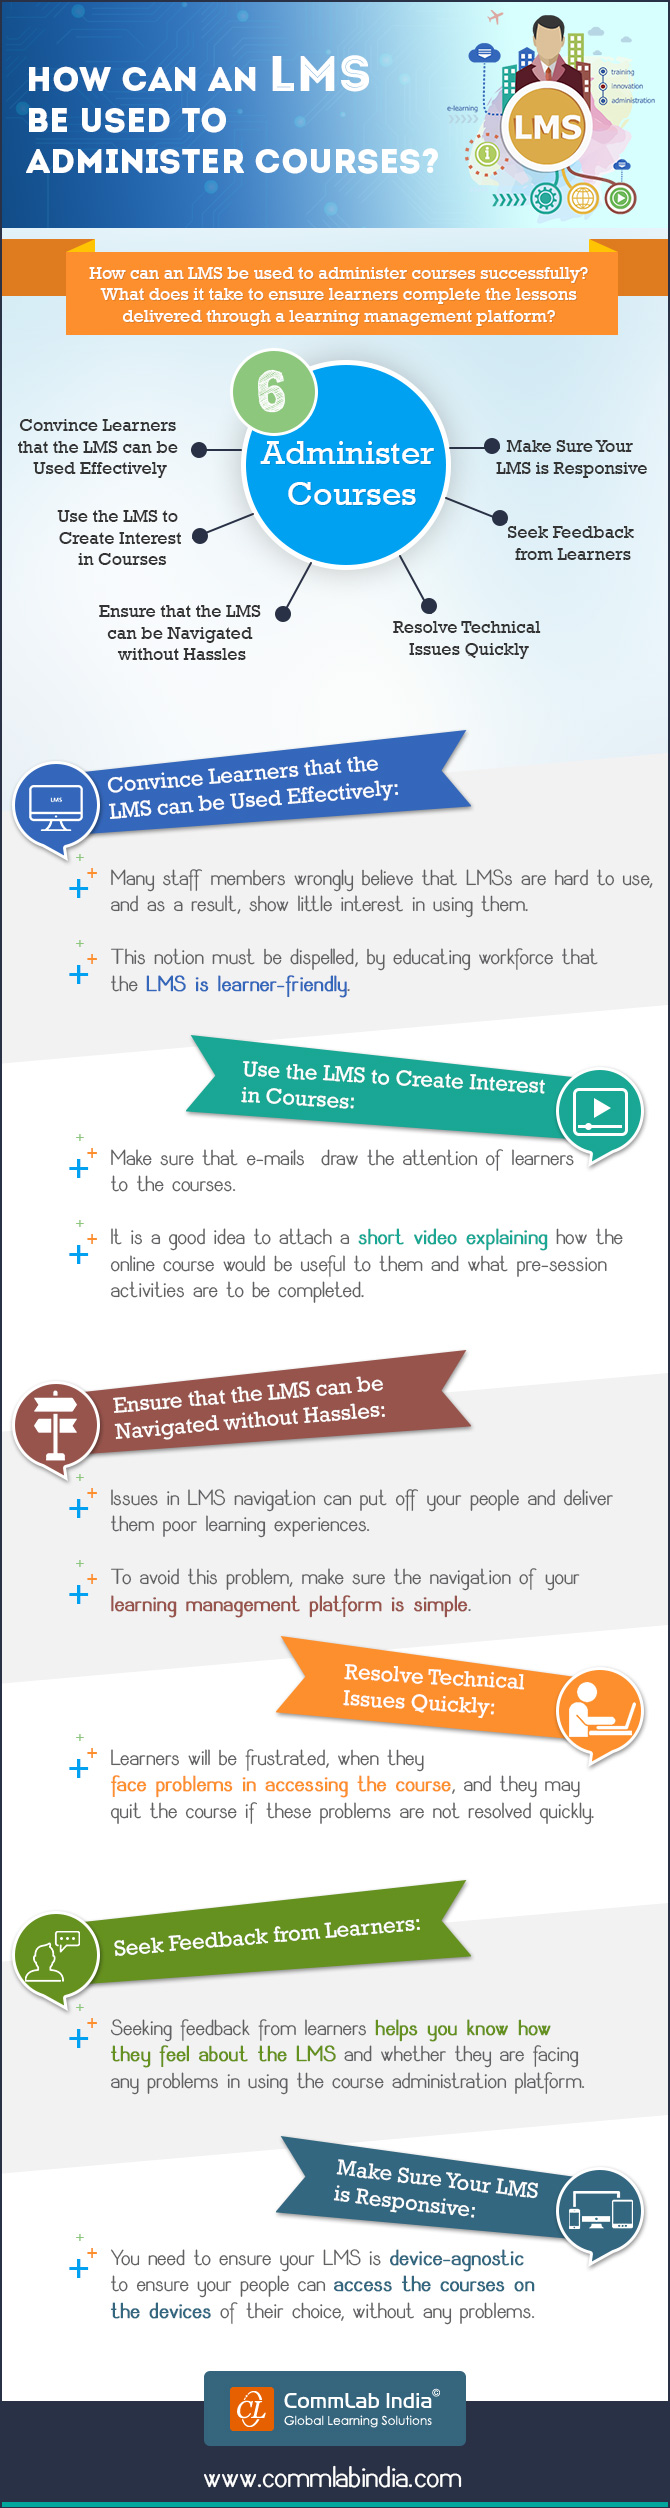 How Can an LMS be Used to Administer Courses? [Infographic]